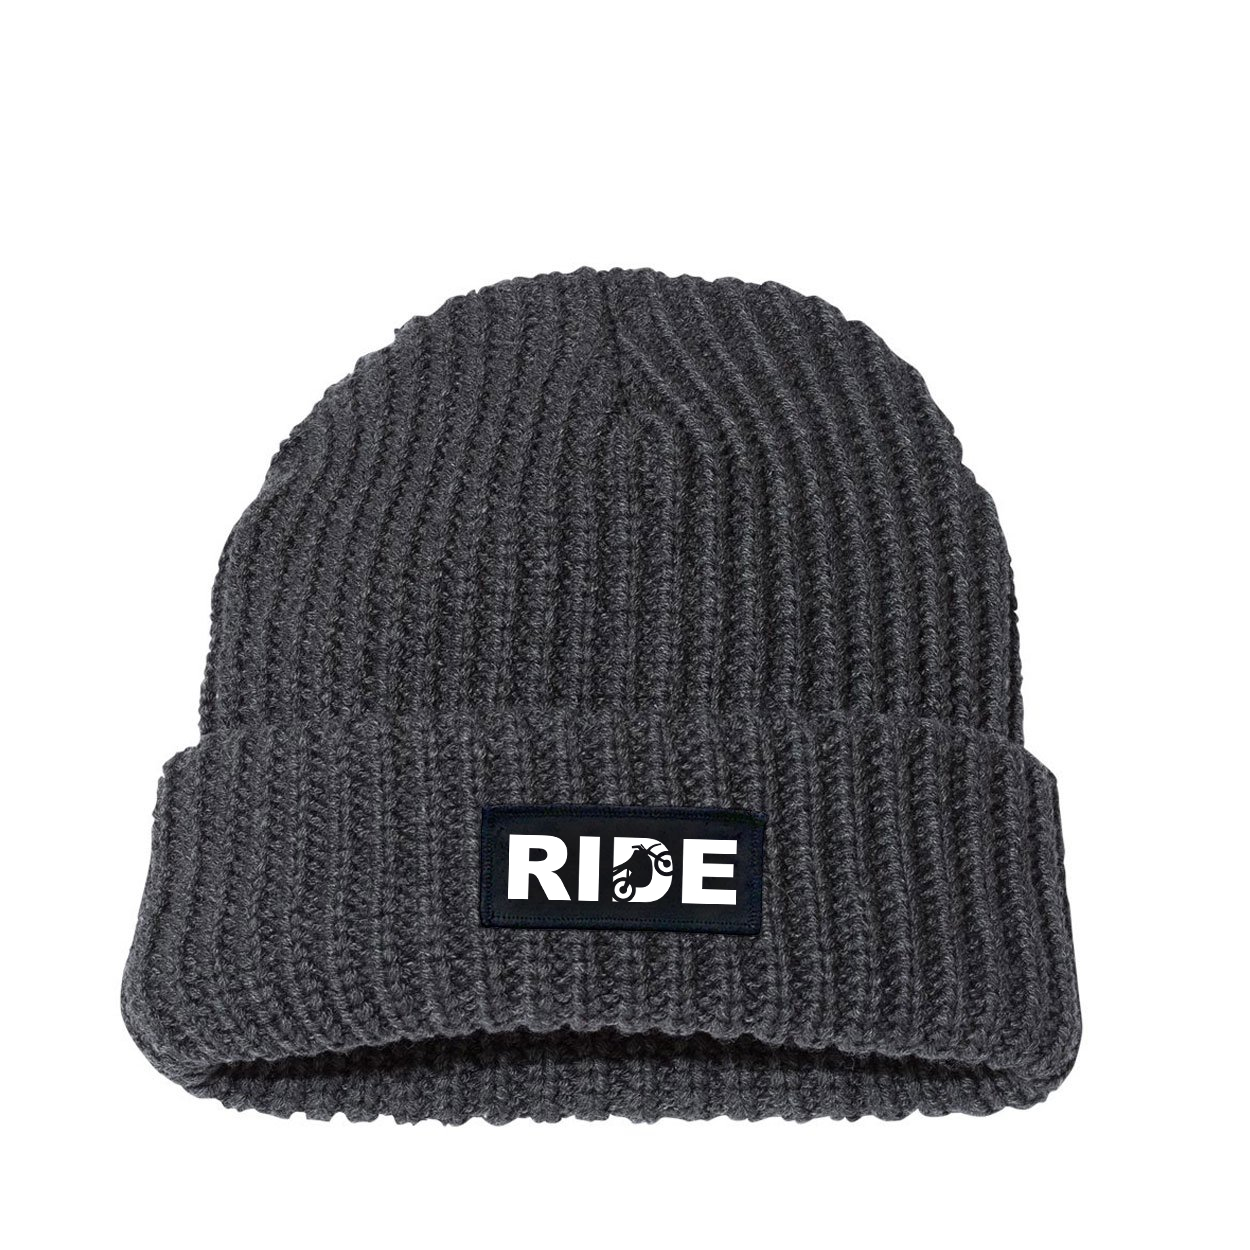 Ride Moto Logo Night Out Woven Patch Roll Up Jumbo Chunky Knit Beanie Charcoal (White Logo)